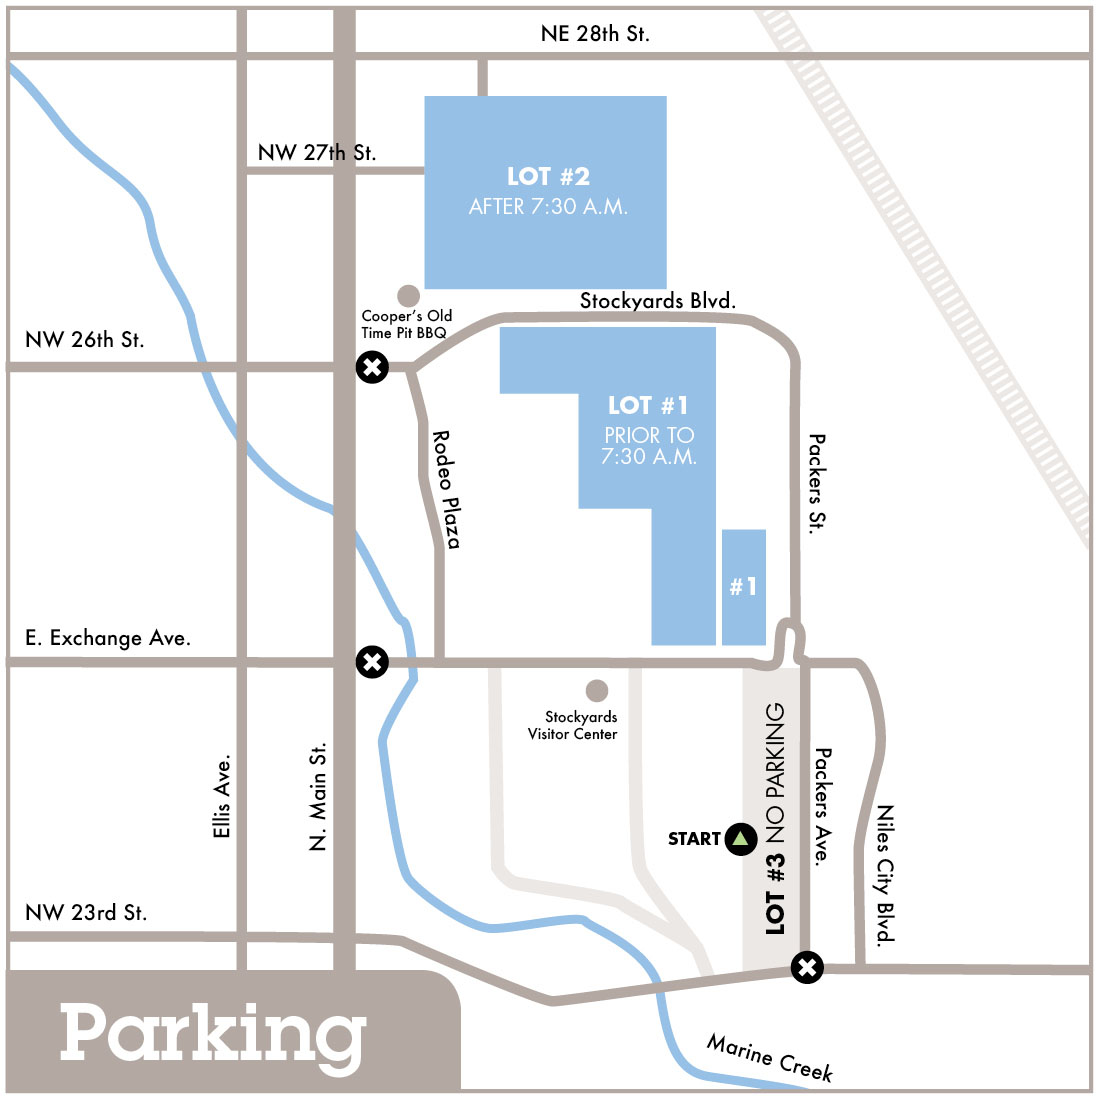 Parking FortWorth Maps 20173